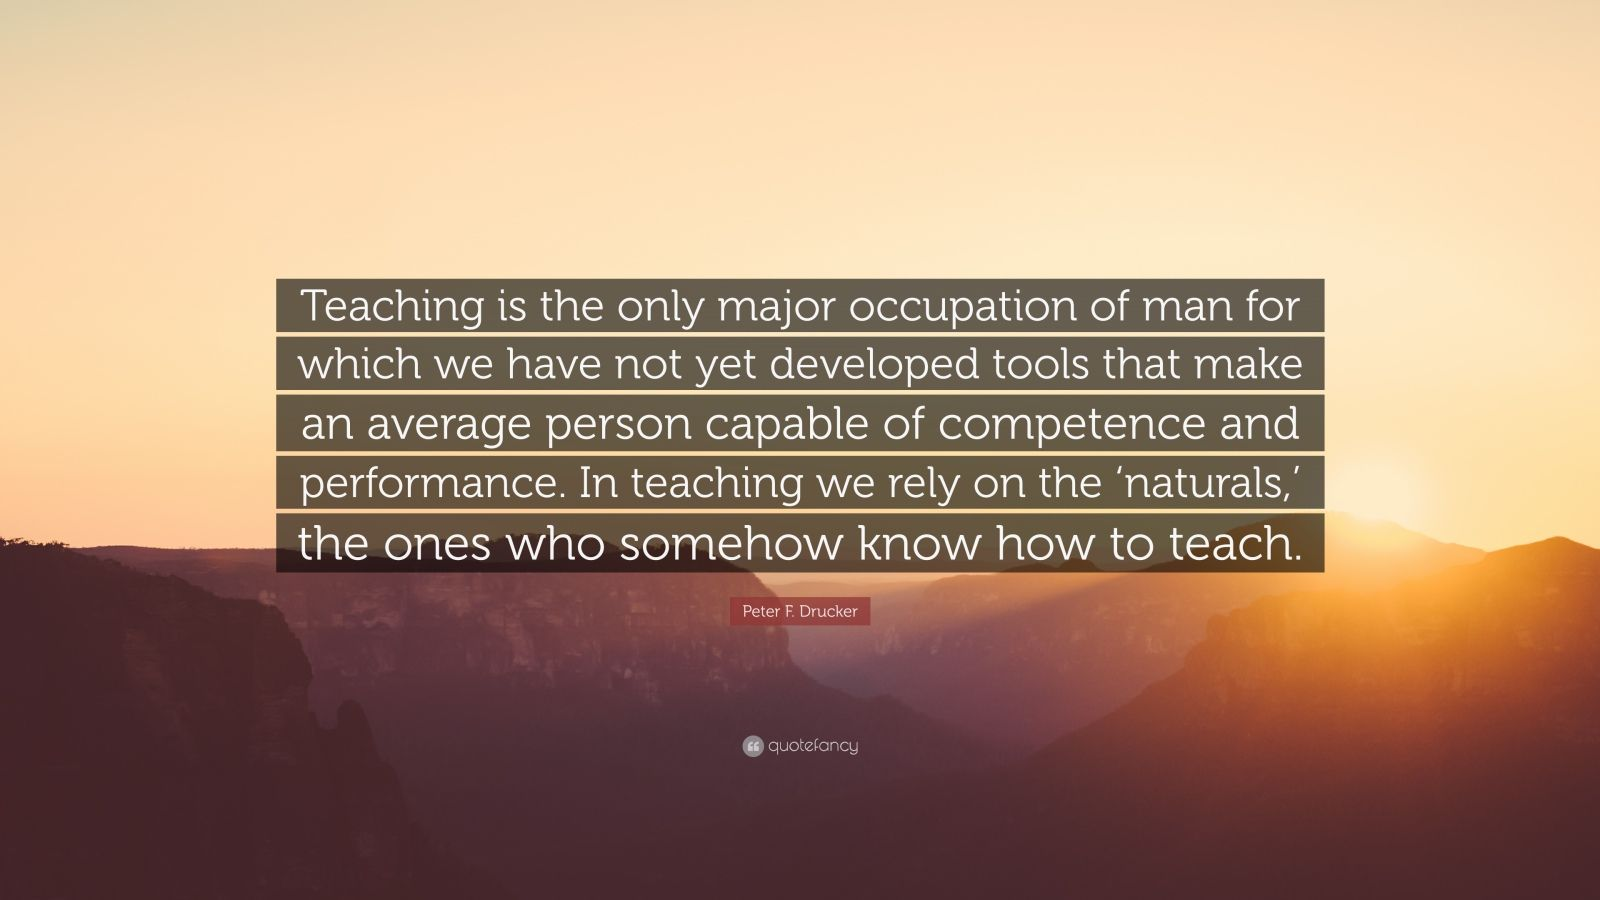 "Peter F. Drucker Quote: ""Teaching is the only major occupation of man for which we have not yet developed tools that make an average person capable of competence and performance. In teaching we rely on the 'naturals,' the ones who somehow know how to teach."""